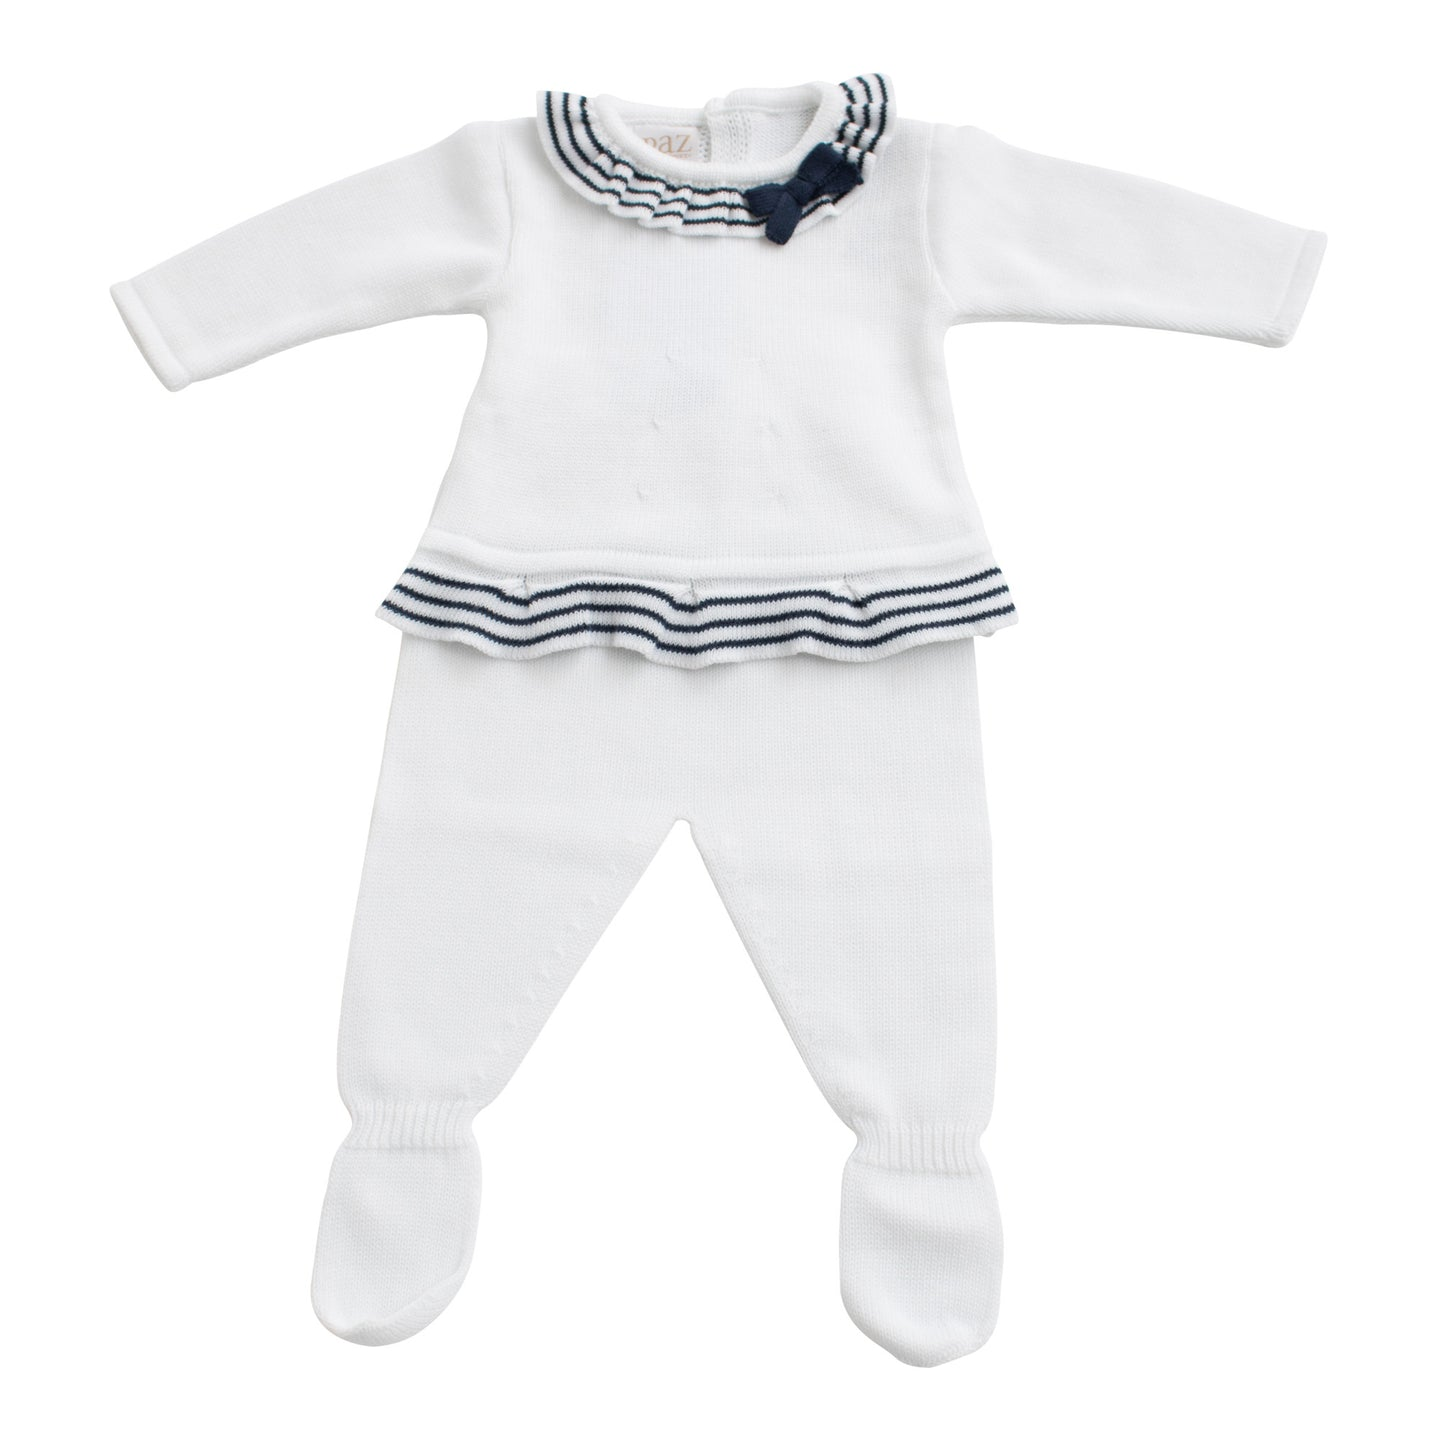 Paz Rodriguez Knitted Baby Navy & White 2 Piece Set